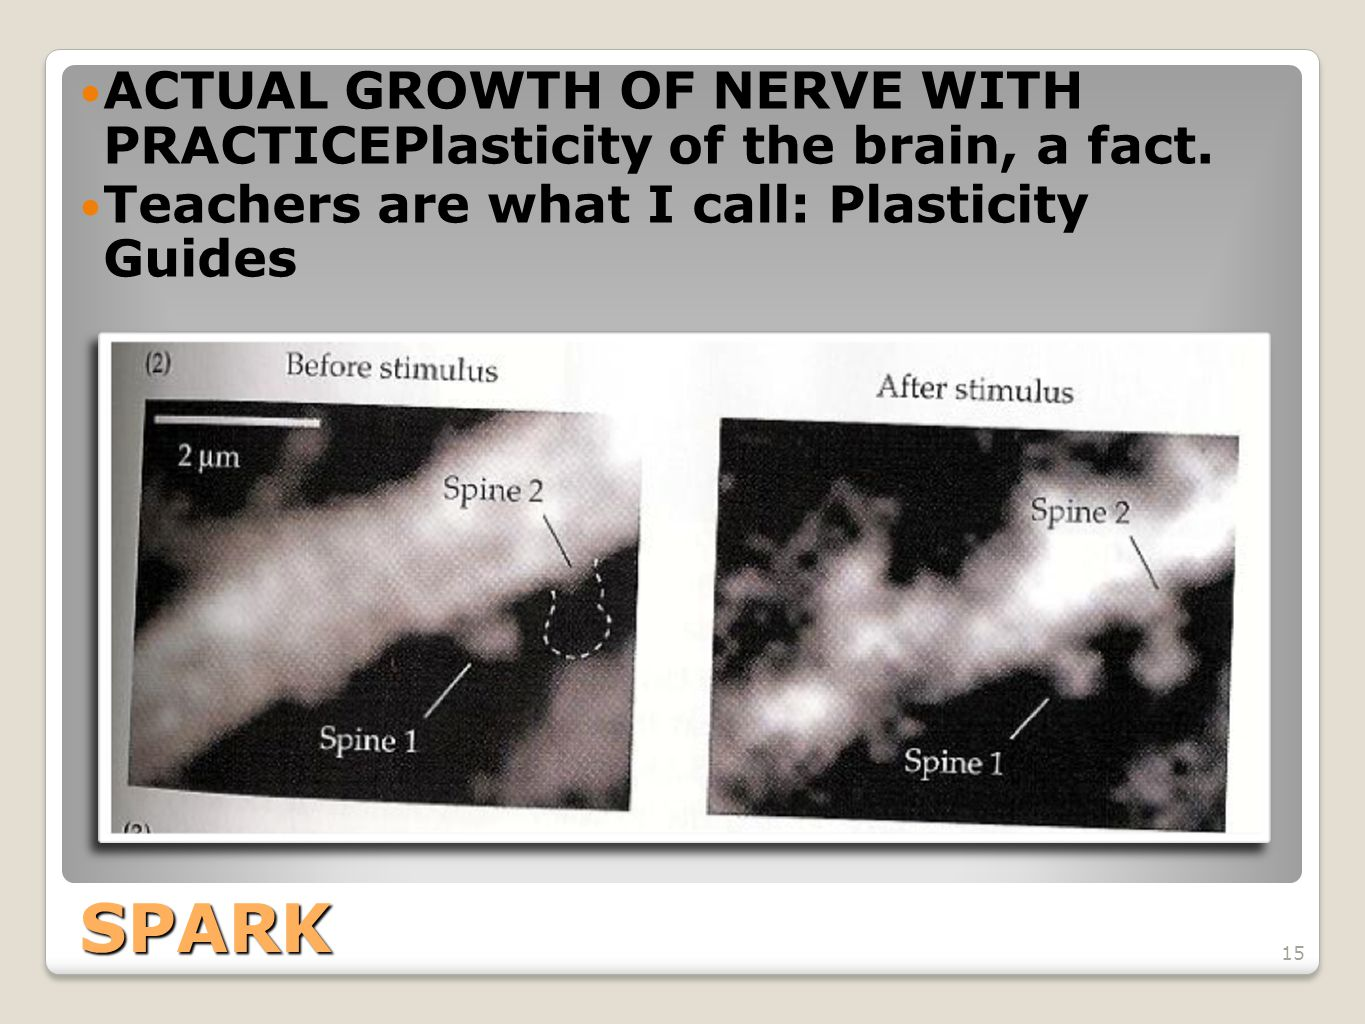 ACTUAL GROWTH OF NERVE WITH PRACTICEPlasticity of the brain, a fact.